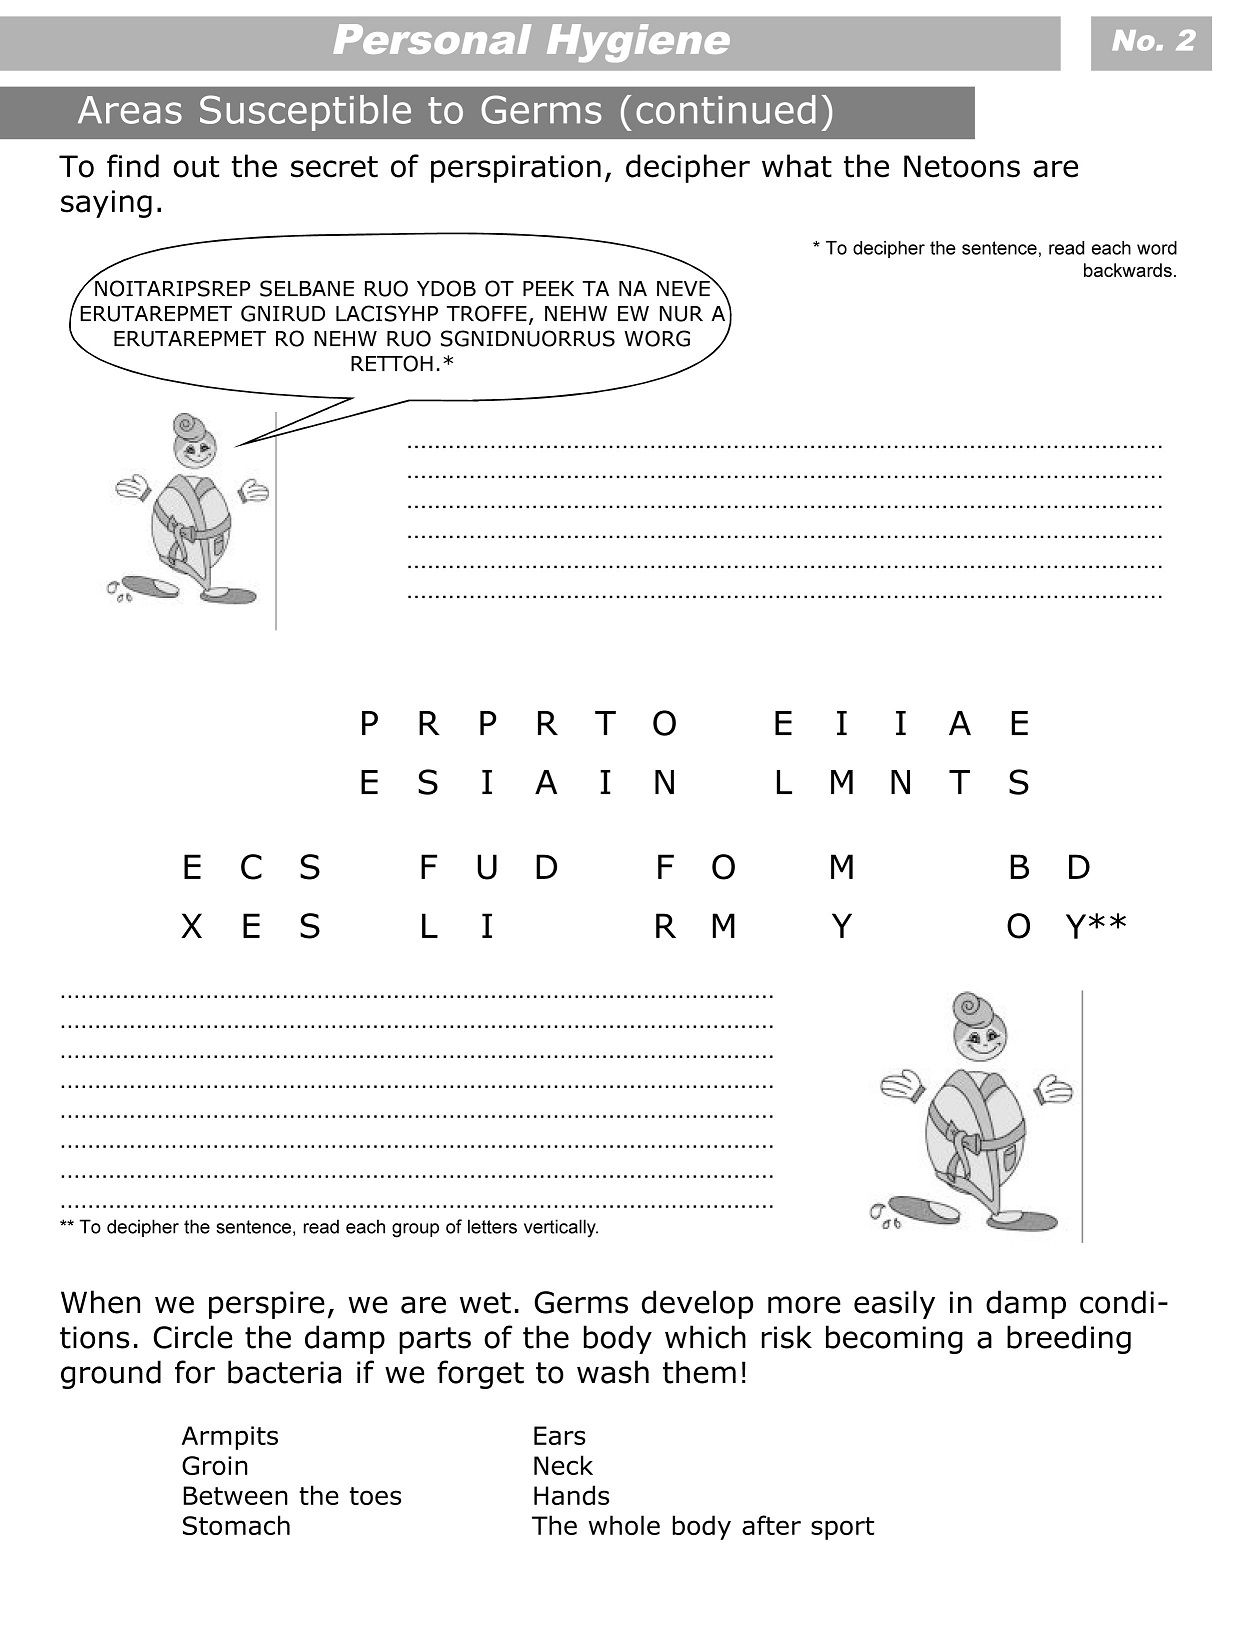 Worksheets Hygiene For Kids Worksheets printable worksheets for personal hygiene kids level 3 2